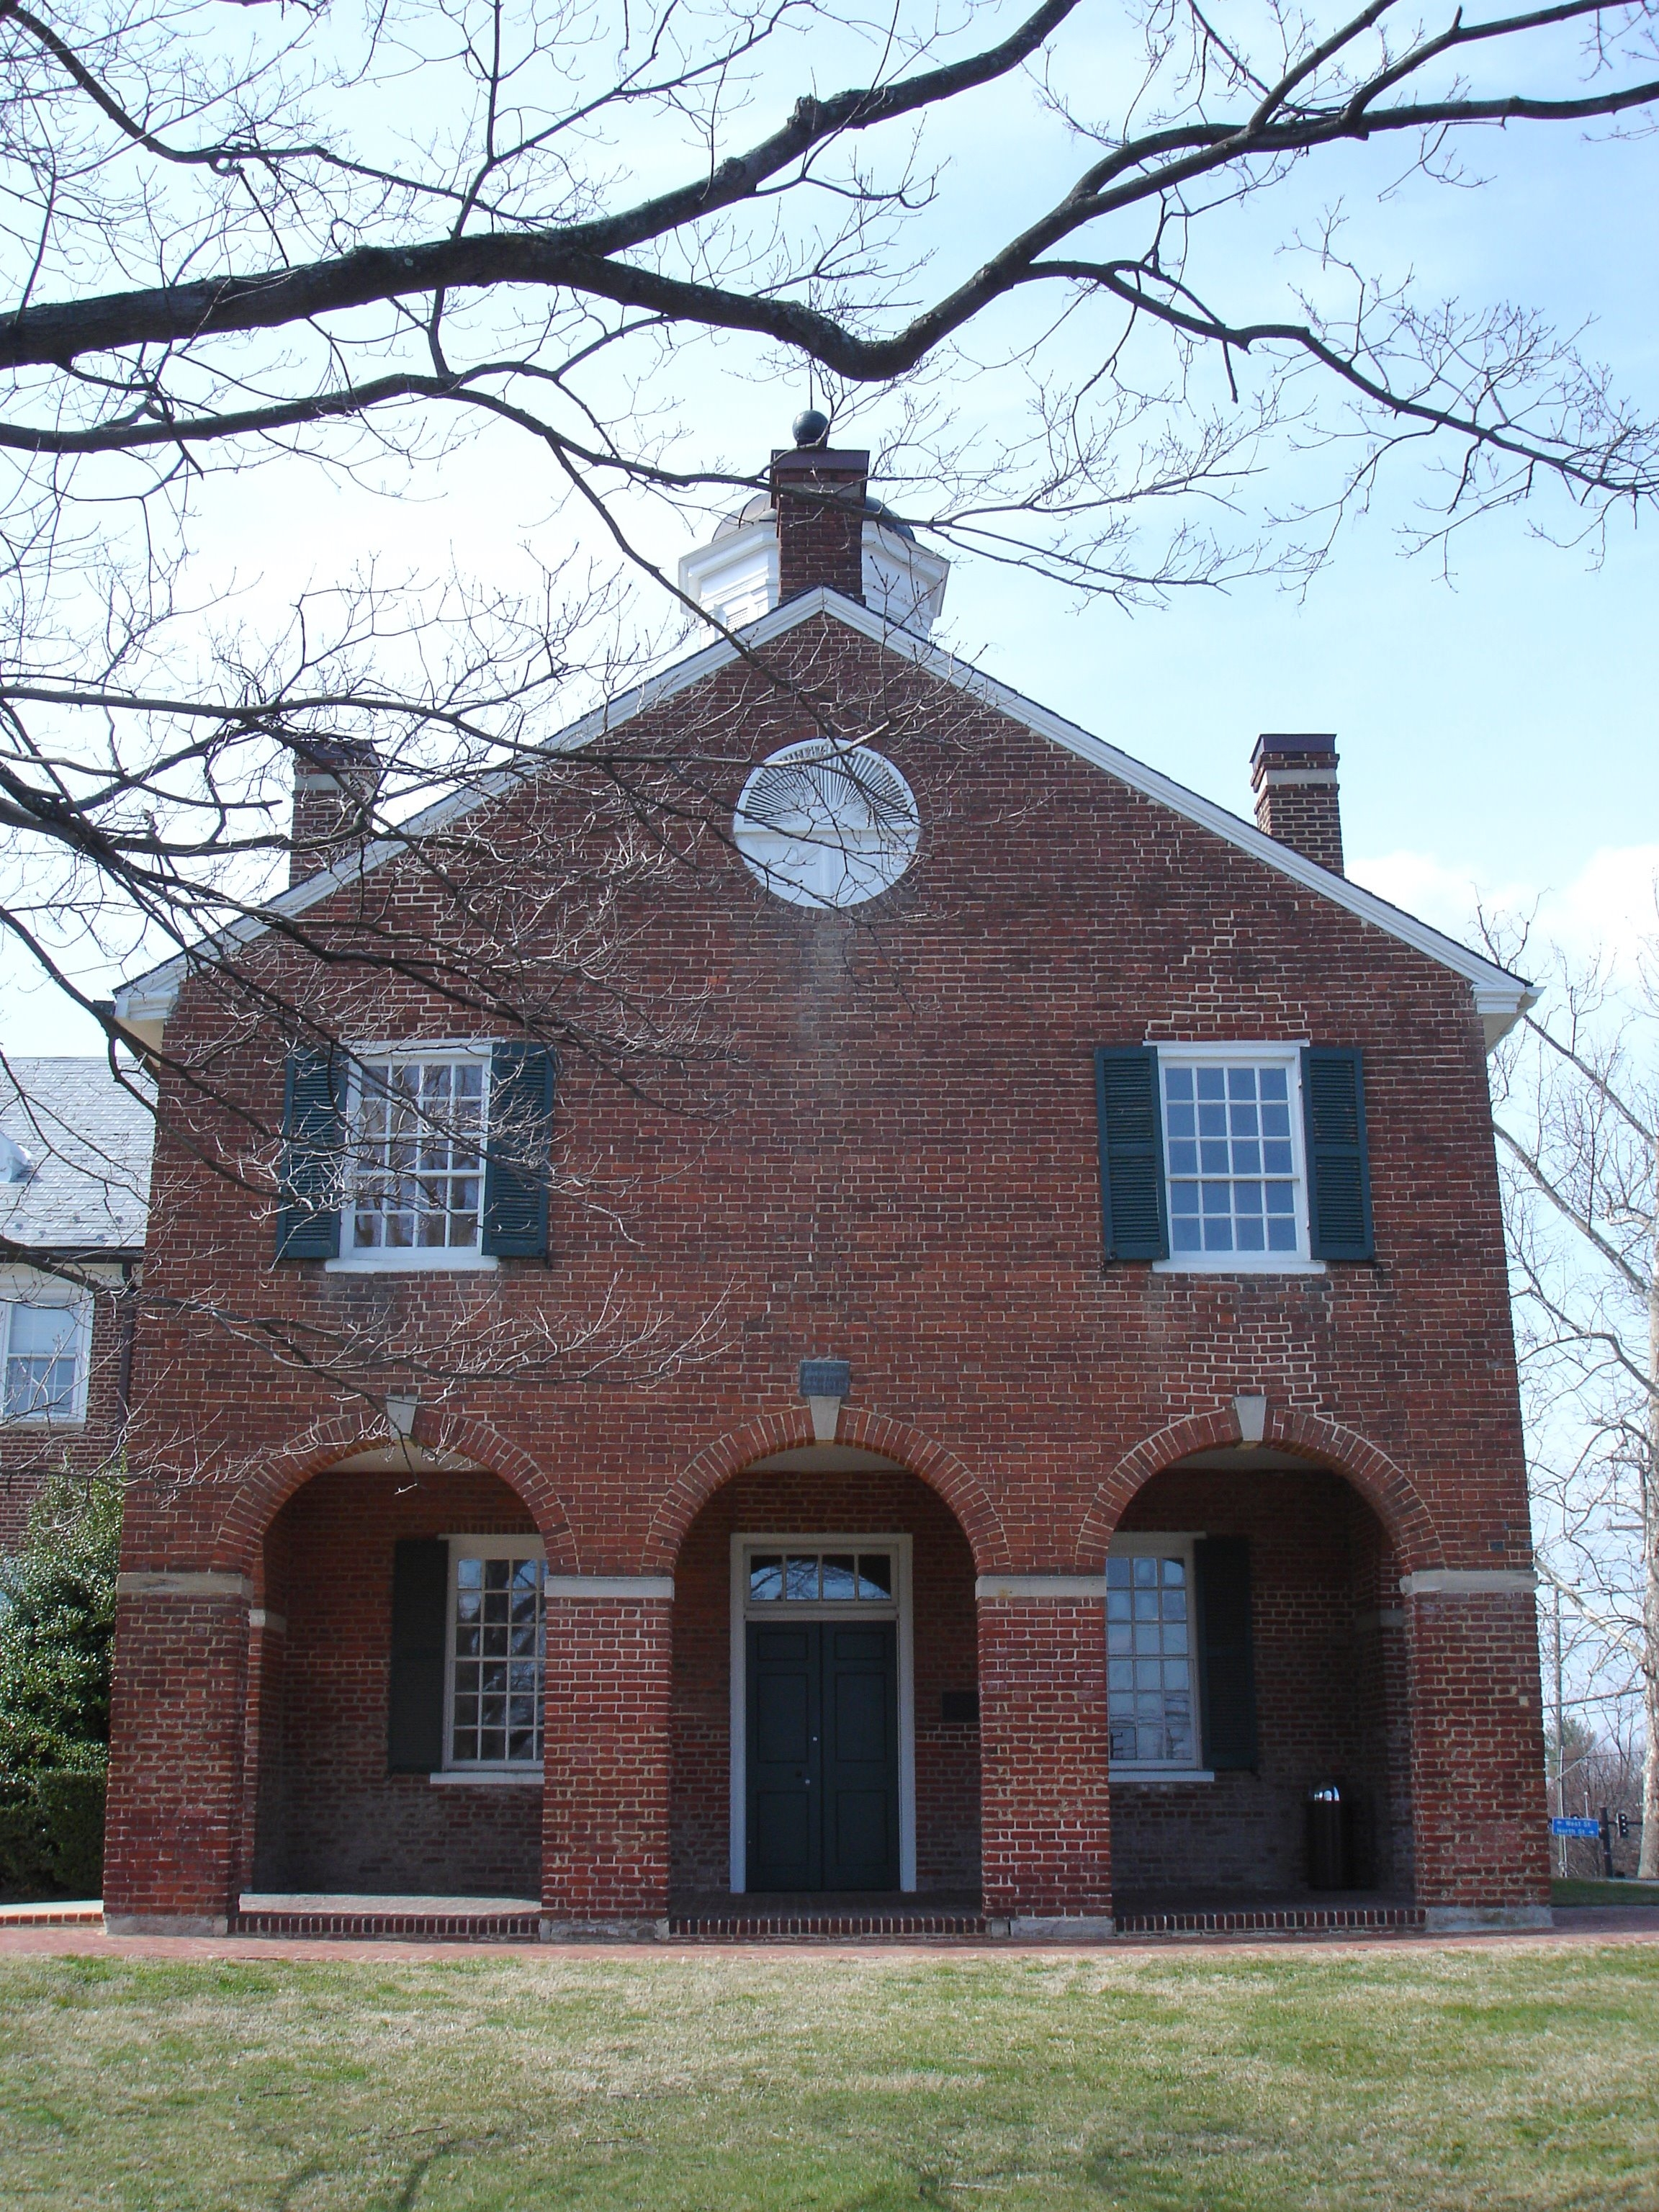 The Historic Fairfax County Courthouse